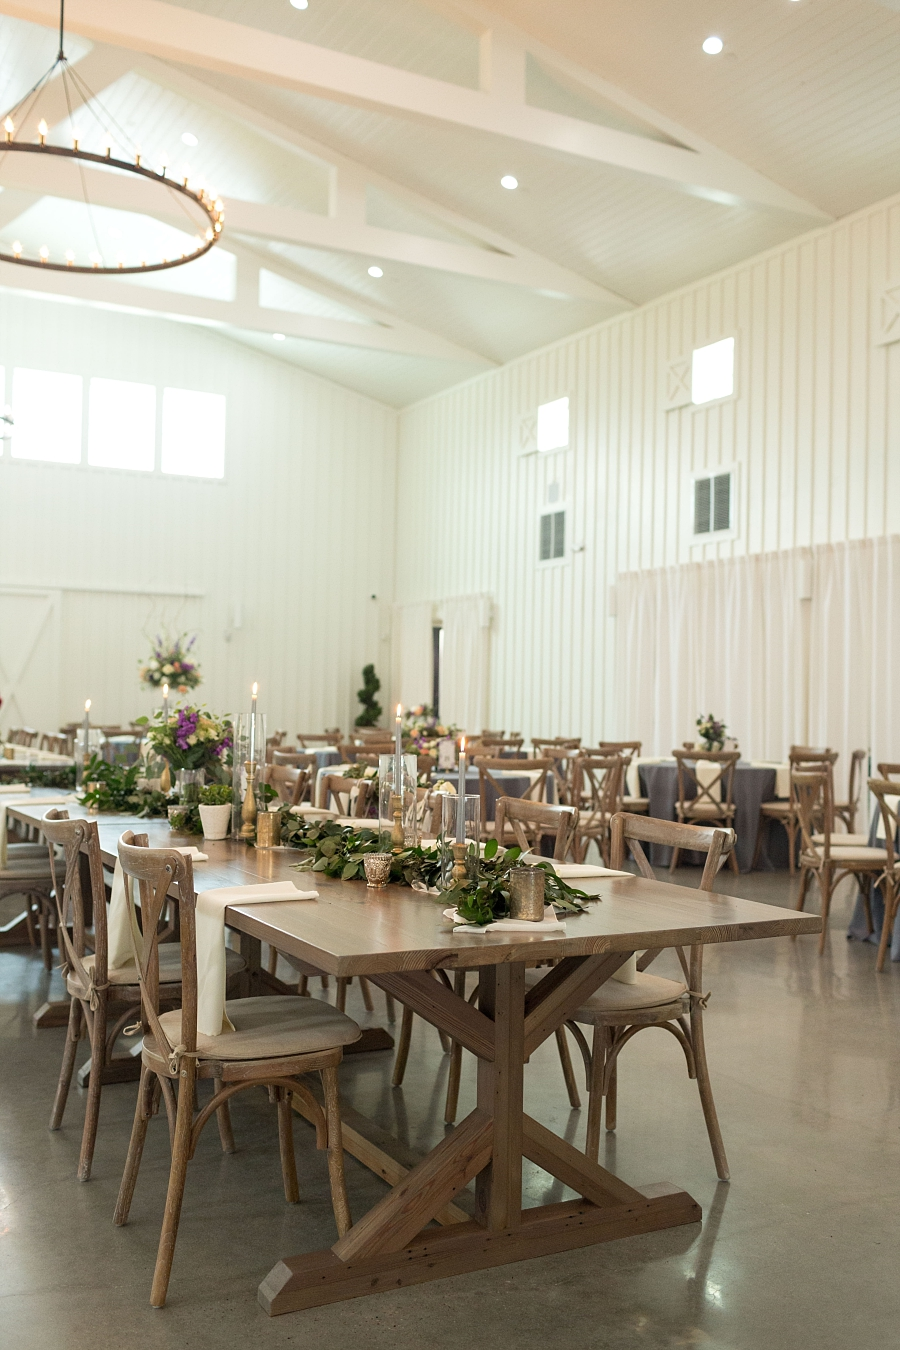 Stacy-Anderson-Photography-The-Farmhouse-Houston-Wedding-Photographer_0047.jpg